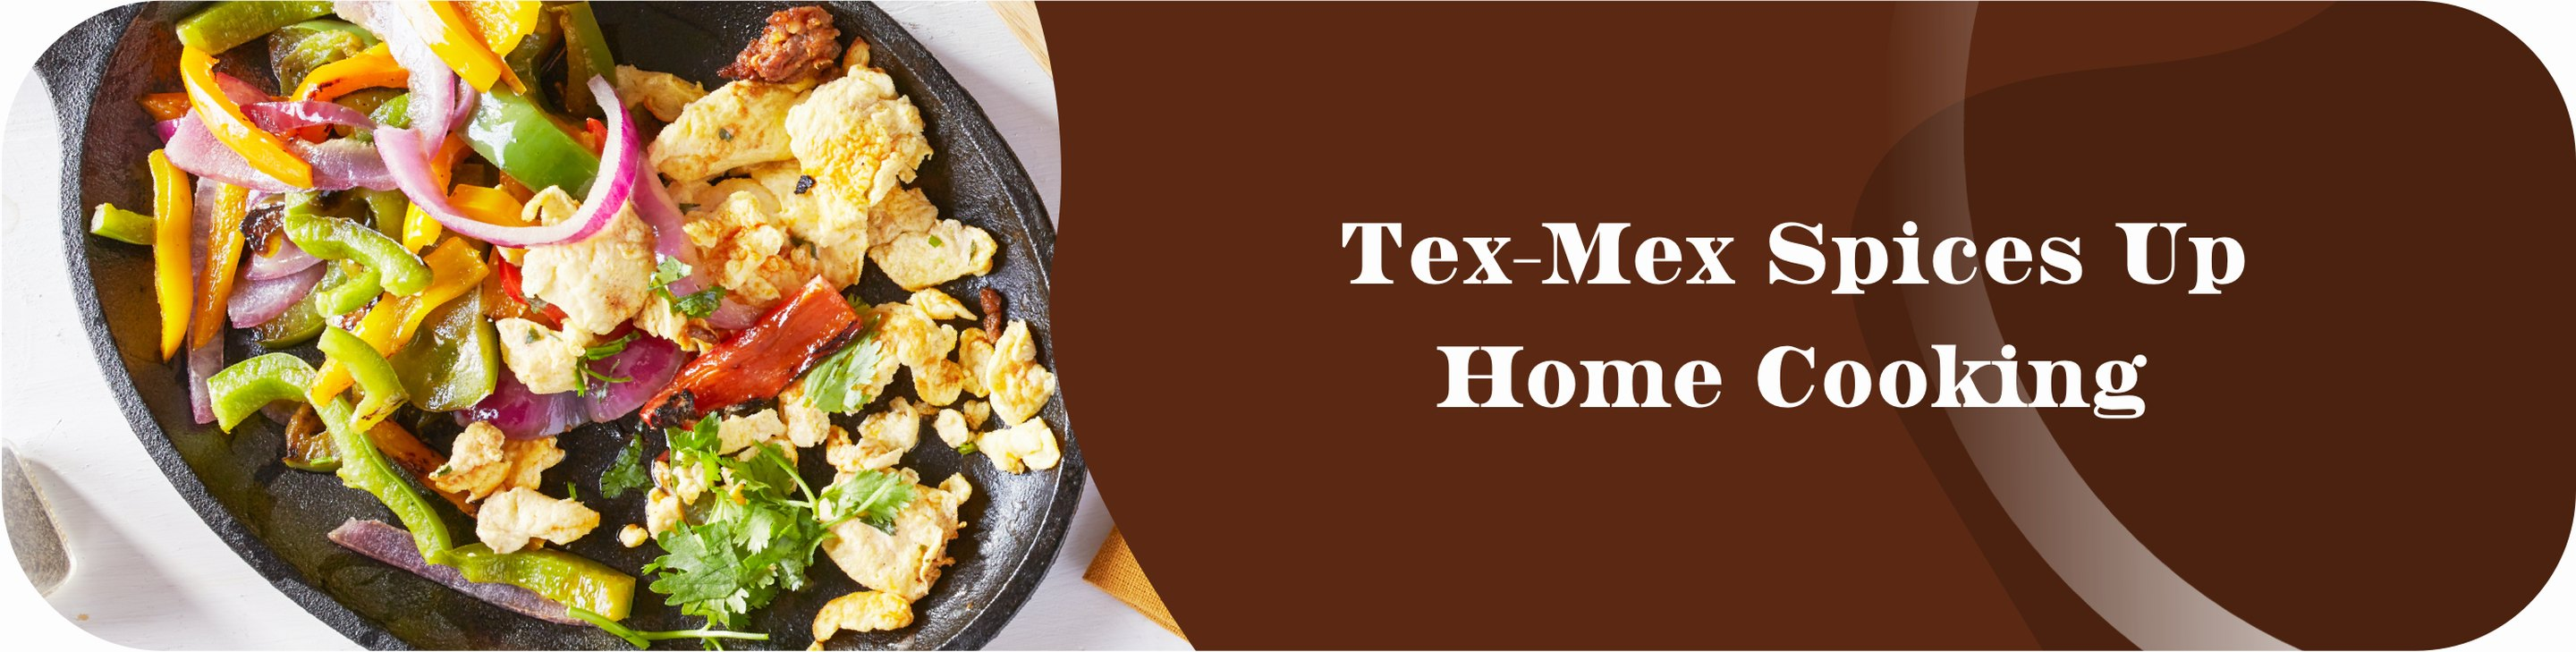 mexican-inspired fajita fillings in skillet with text tex-mex spices up home cooking on brown background